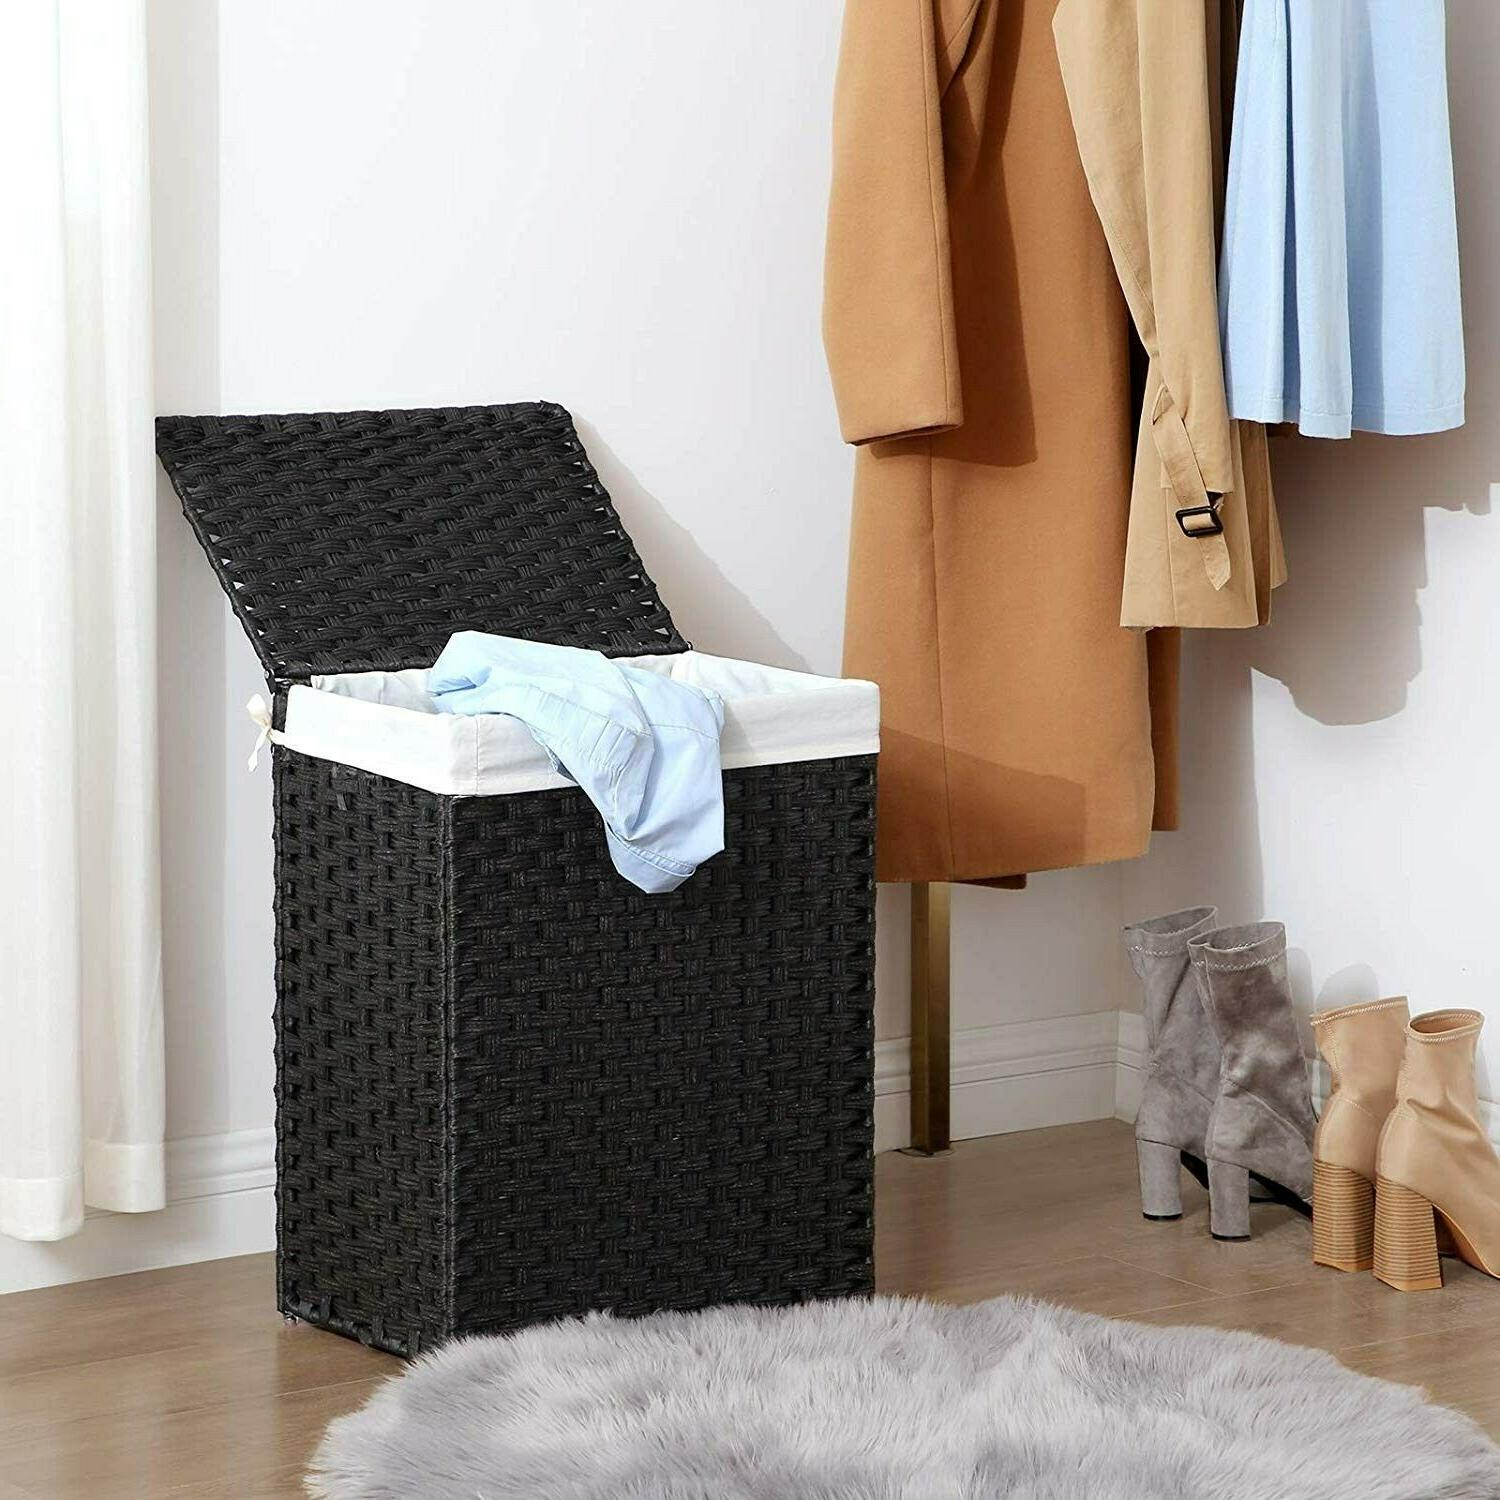 Laundry Hamper With Bag